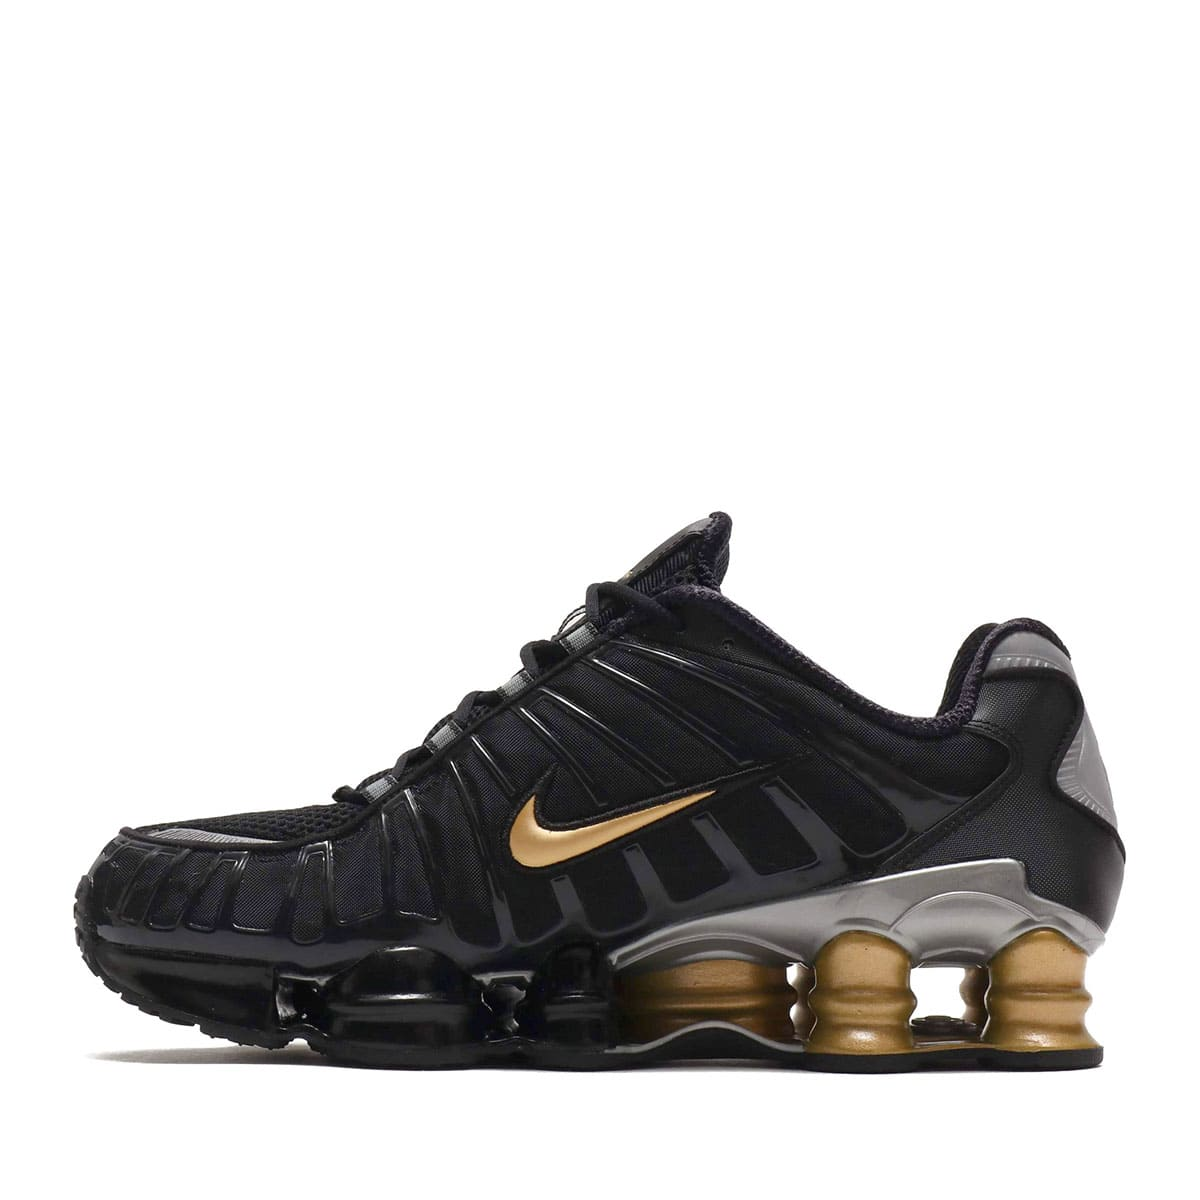 """NIKE SHOX TL / NEYMAR JR. BLACK/METALLIC SILVER-METALLIC GOLD 19FA-S""_photo_3"